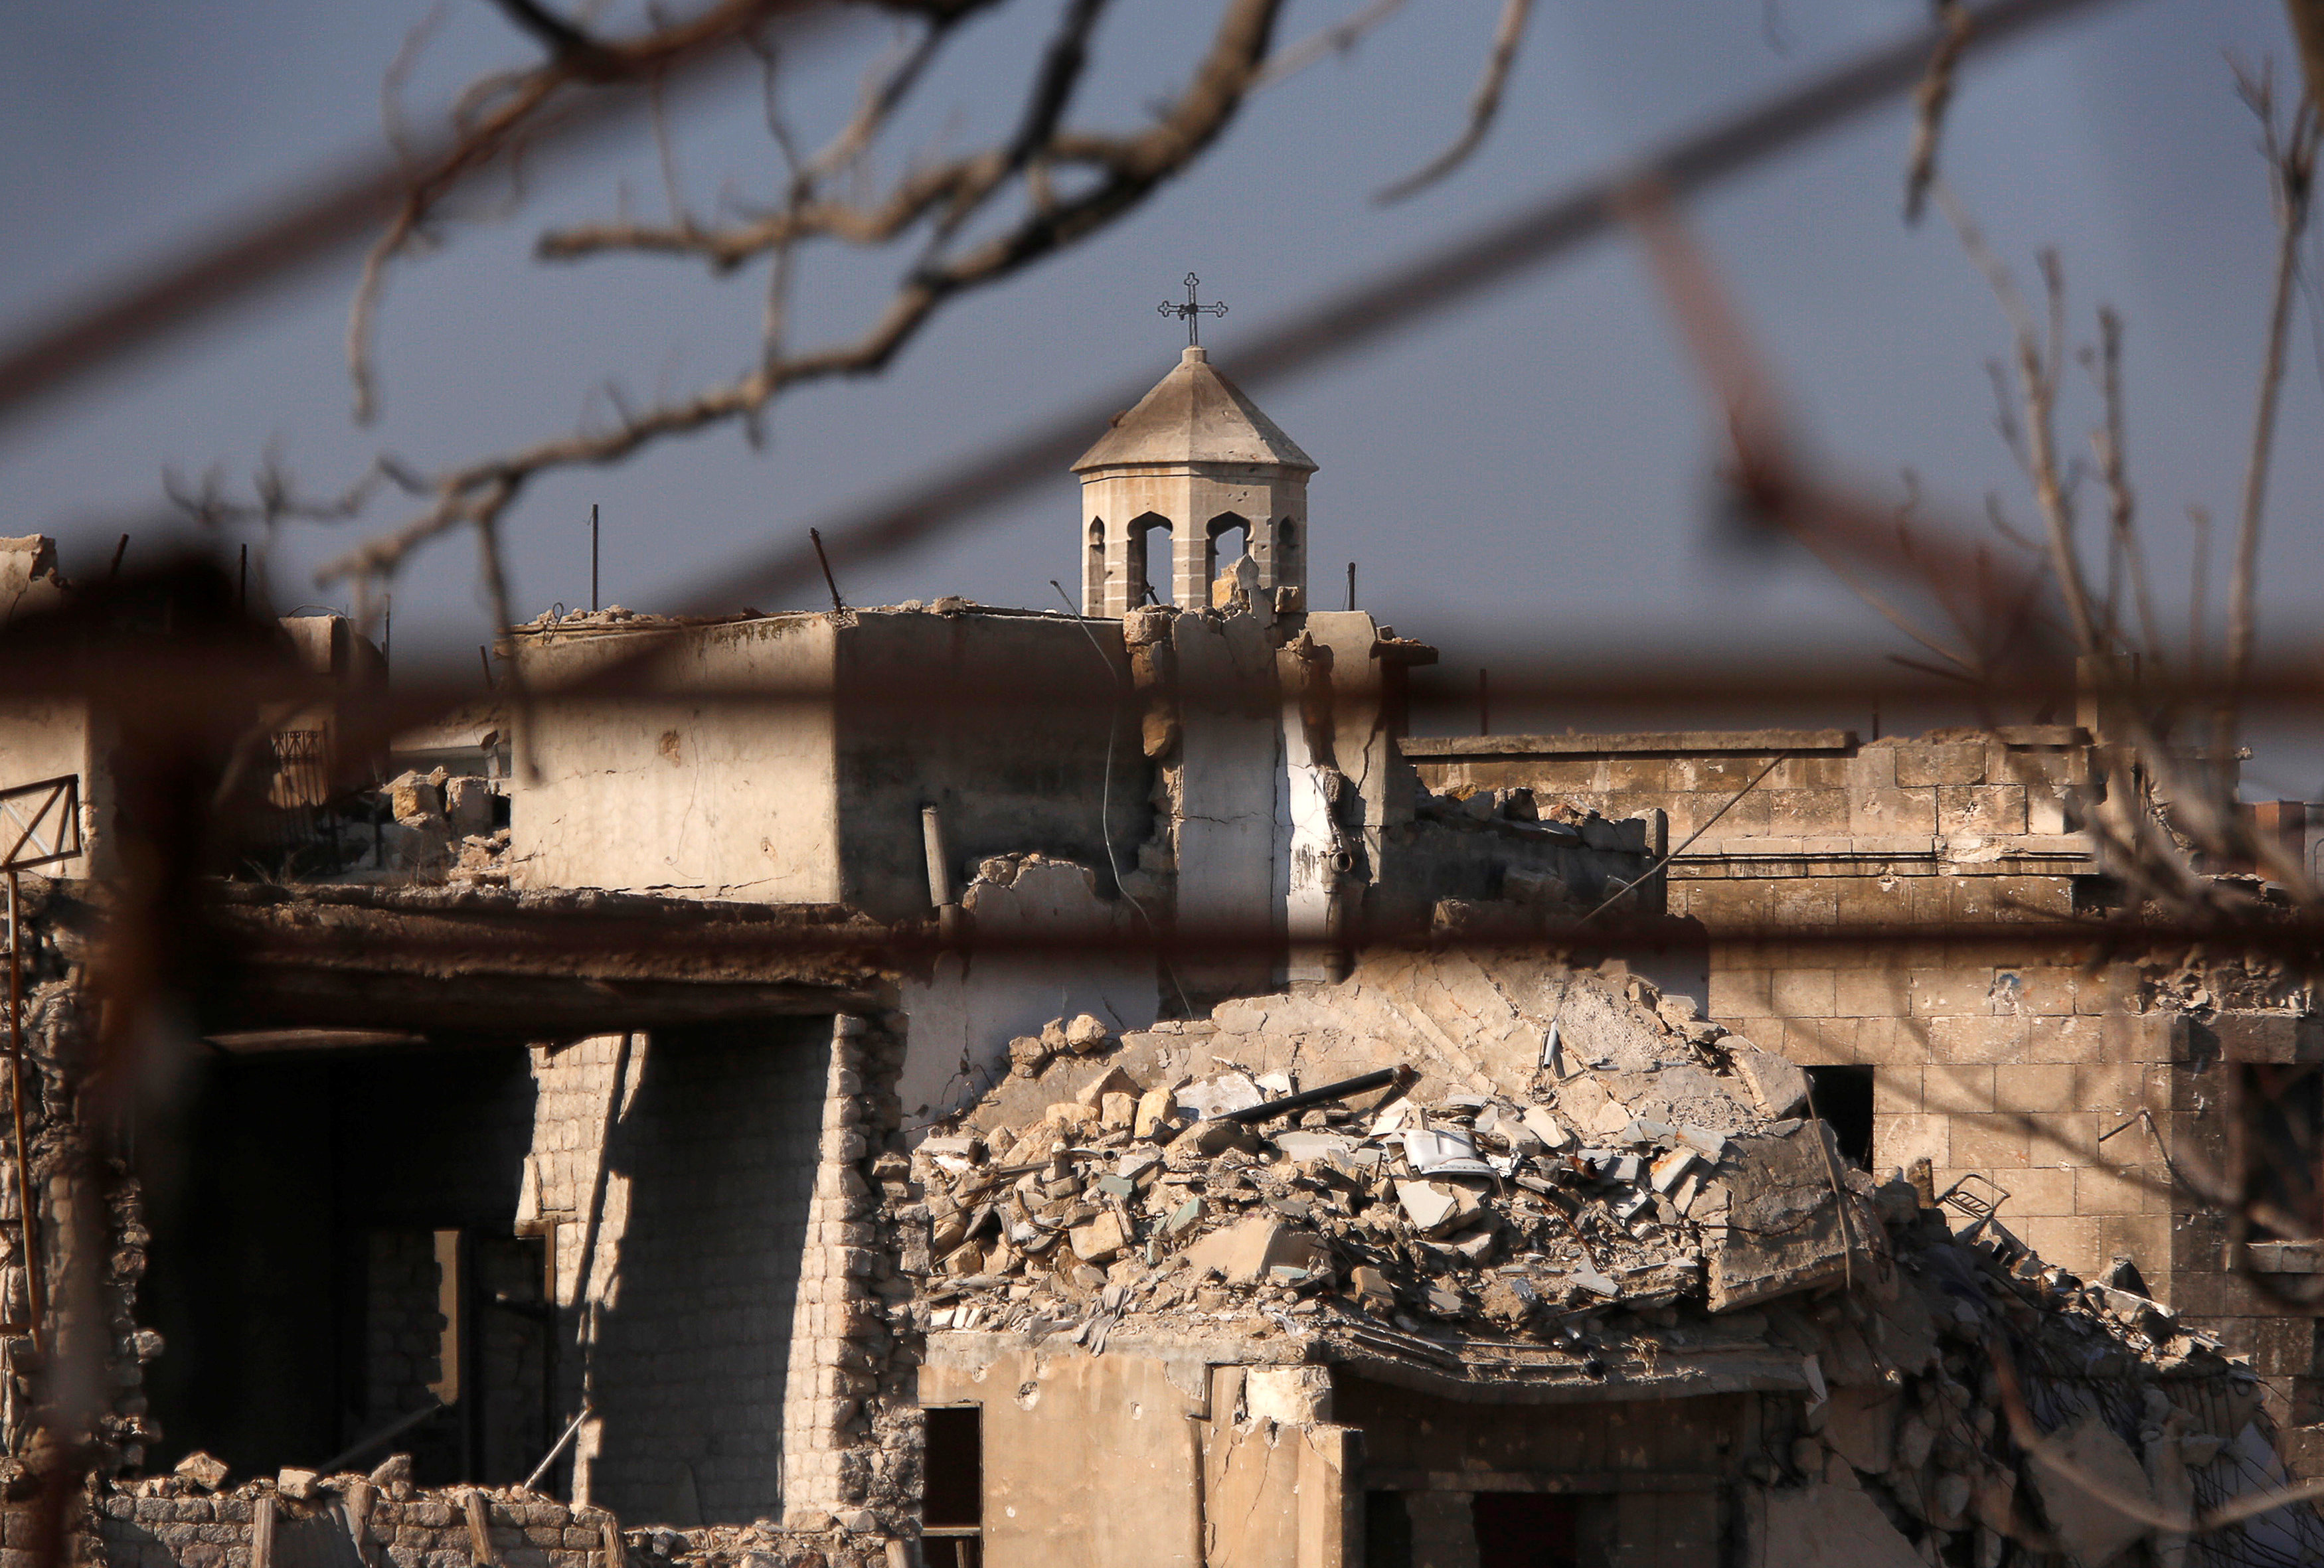 A part of a church is seen amid the damage in the government-controlled area of the Old City of Aleppo, Syria December 10, 2016